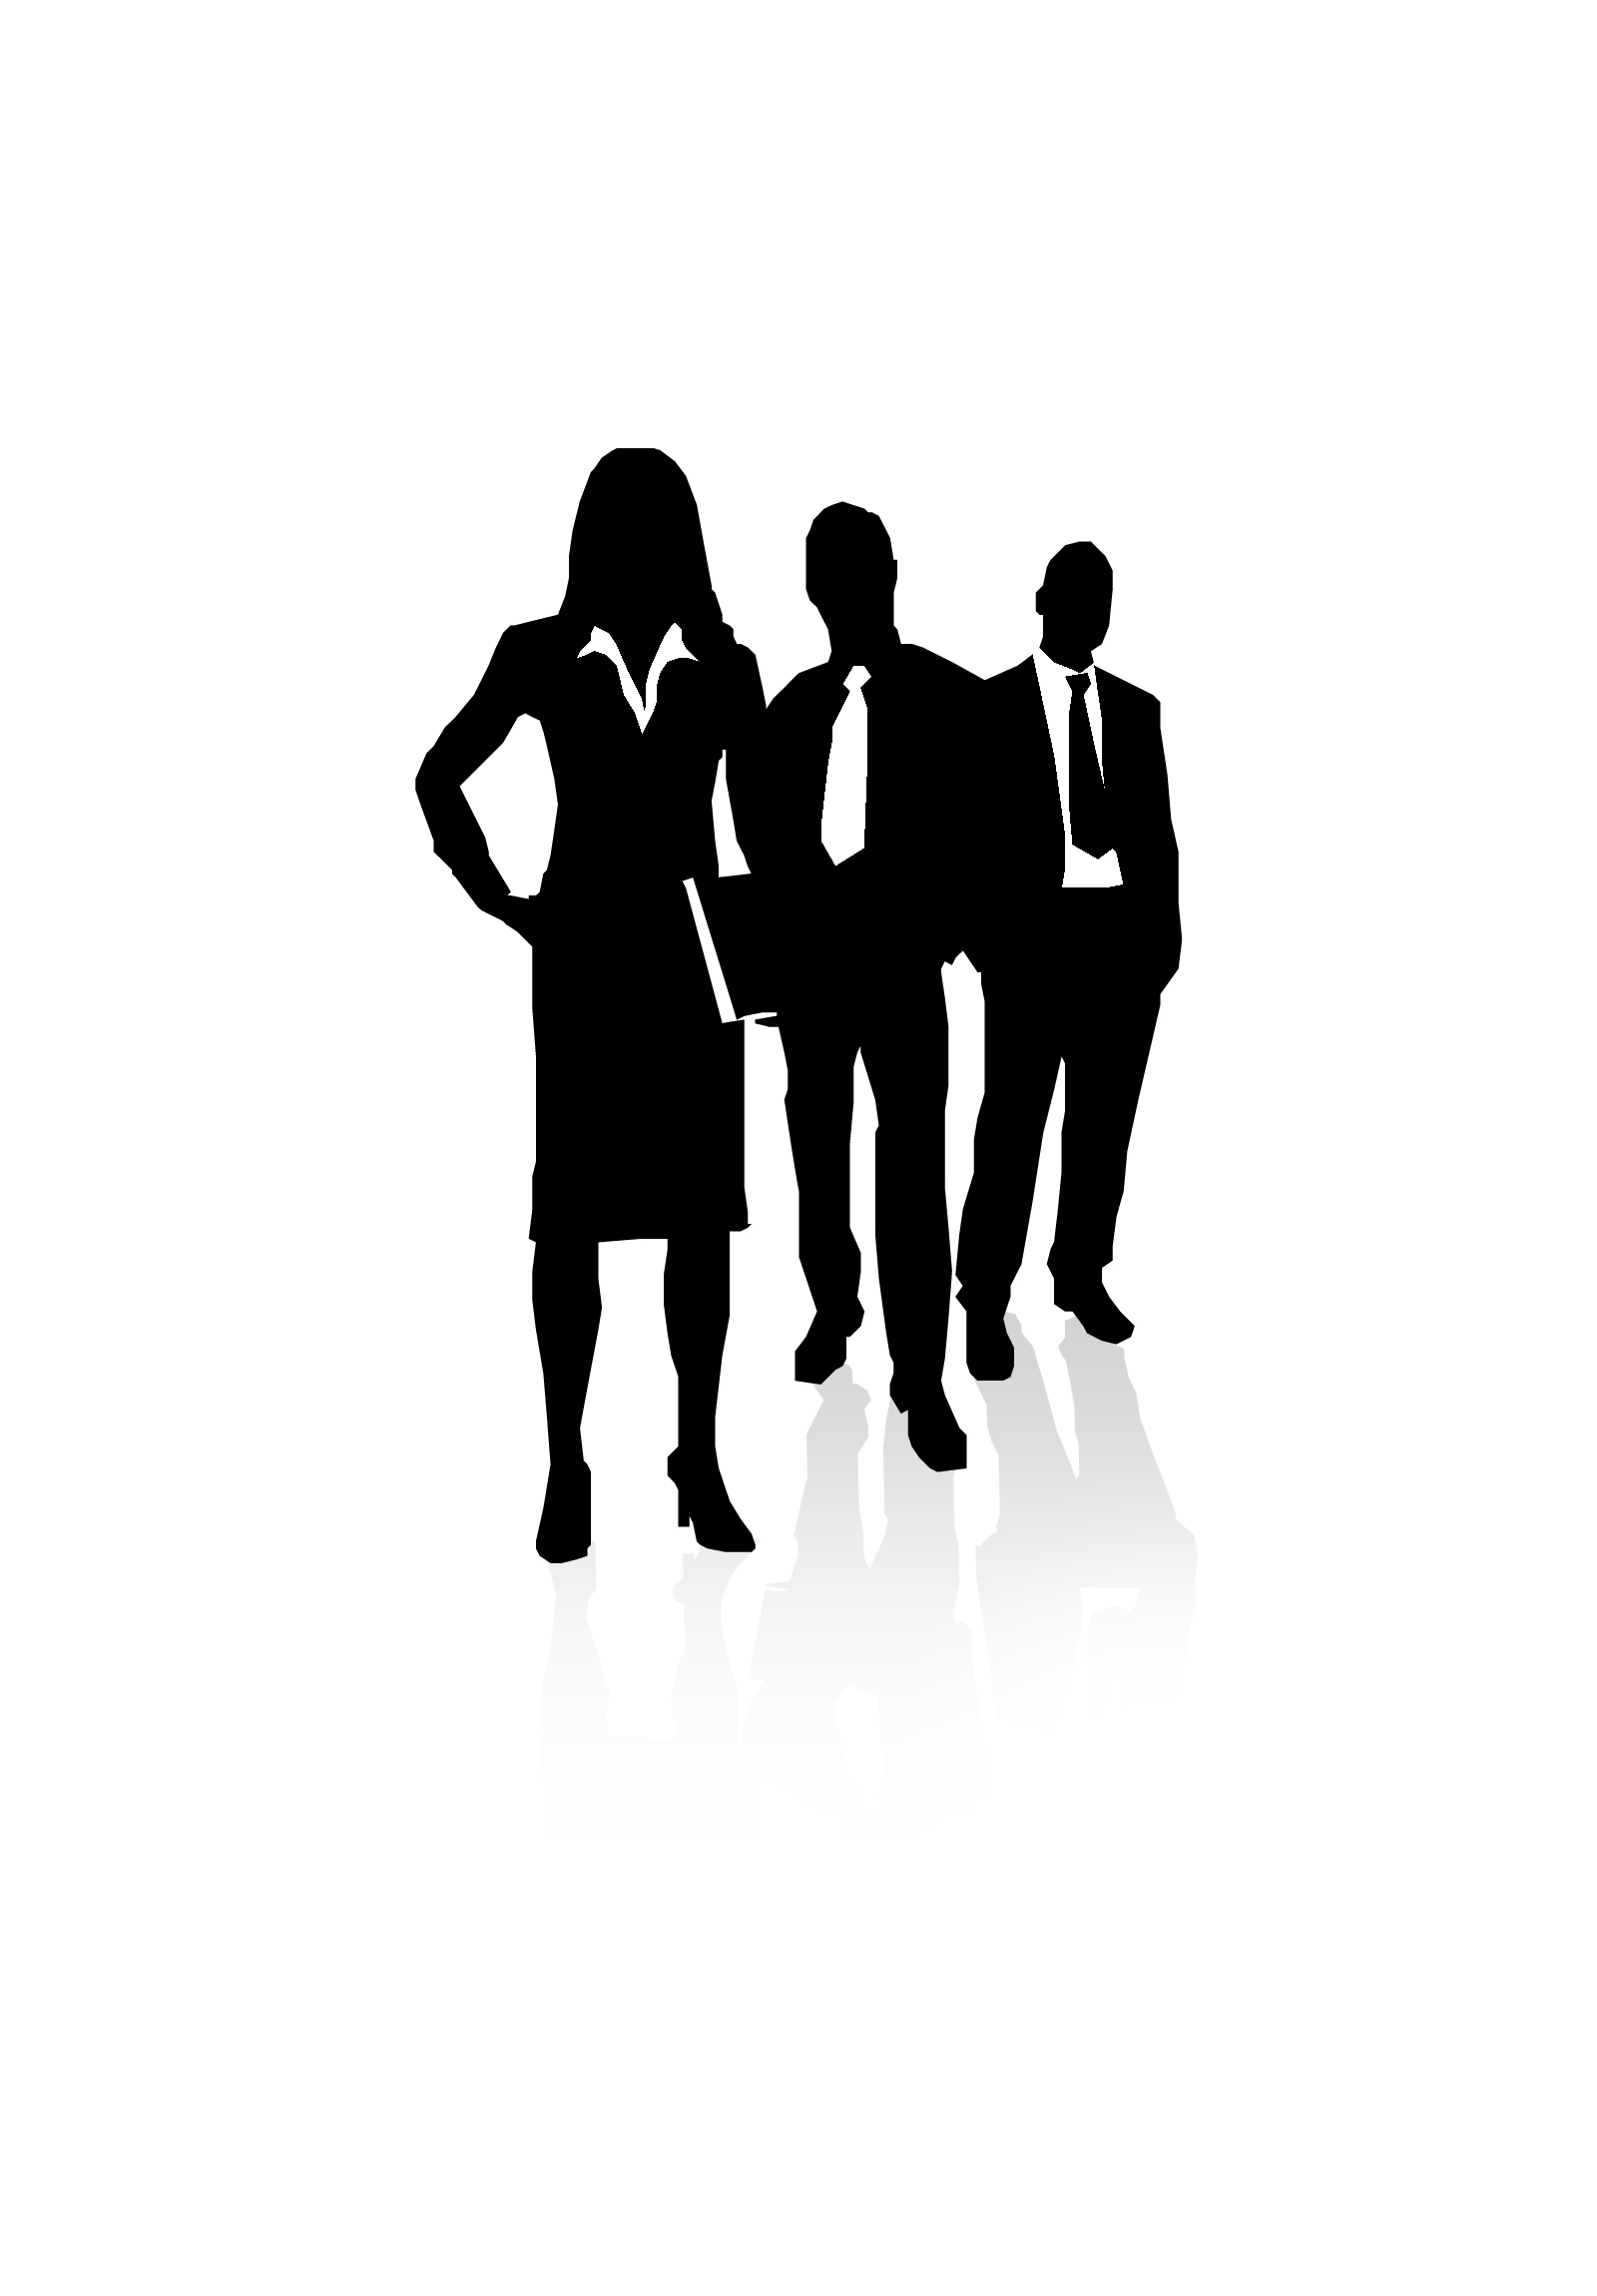 Business clip art free images free clipart images 3.